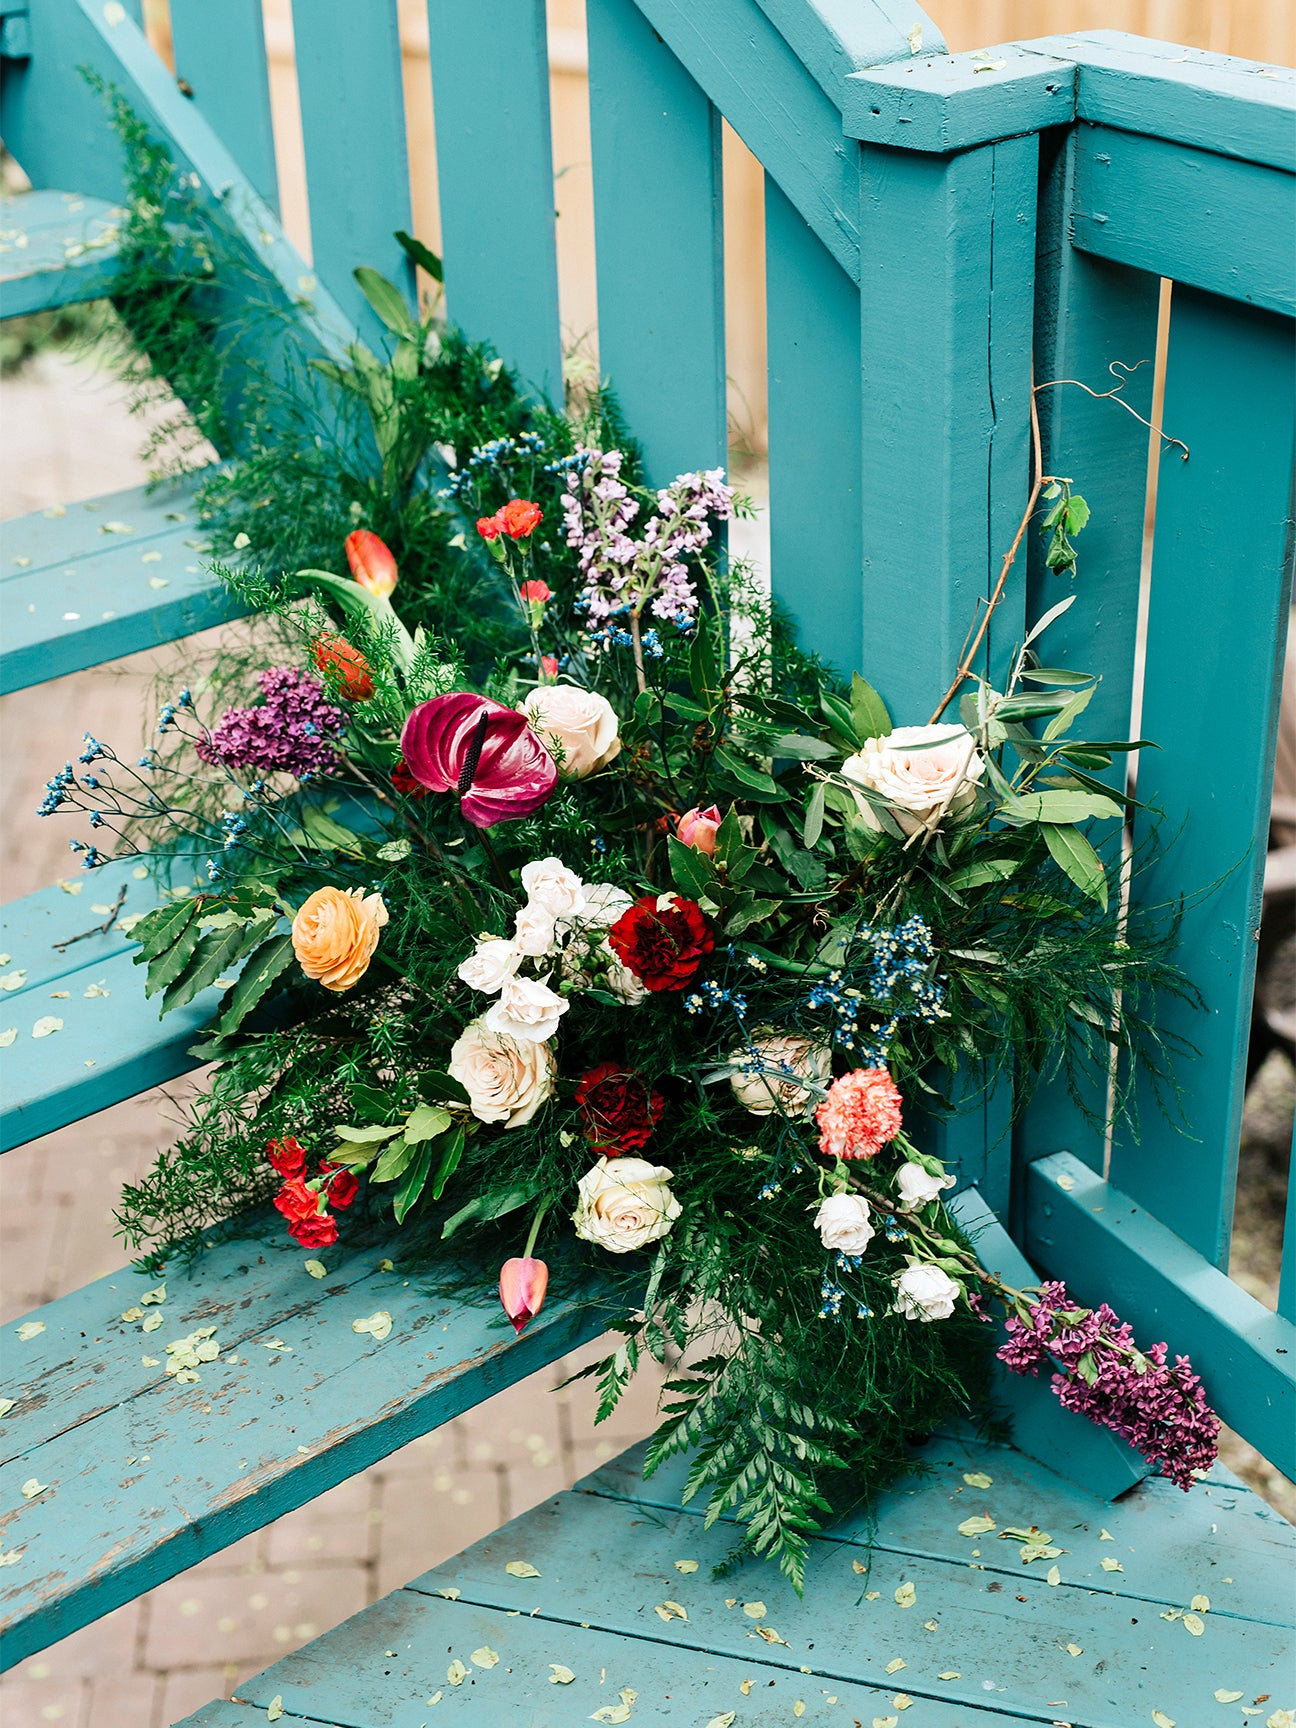 colorful flowers against blue staircase